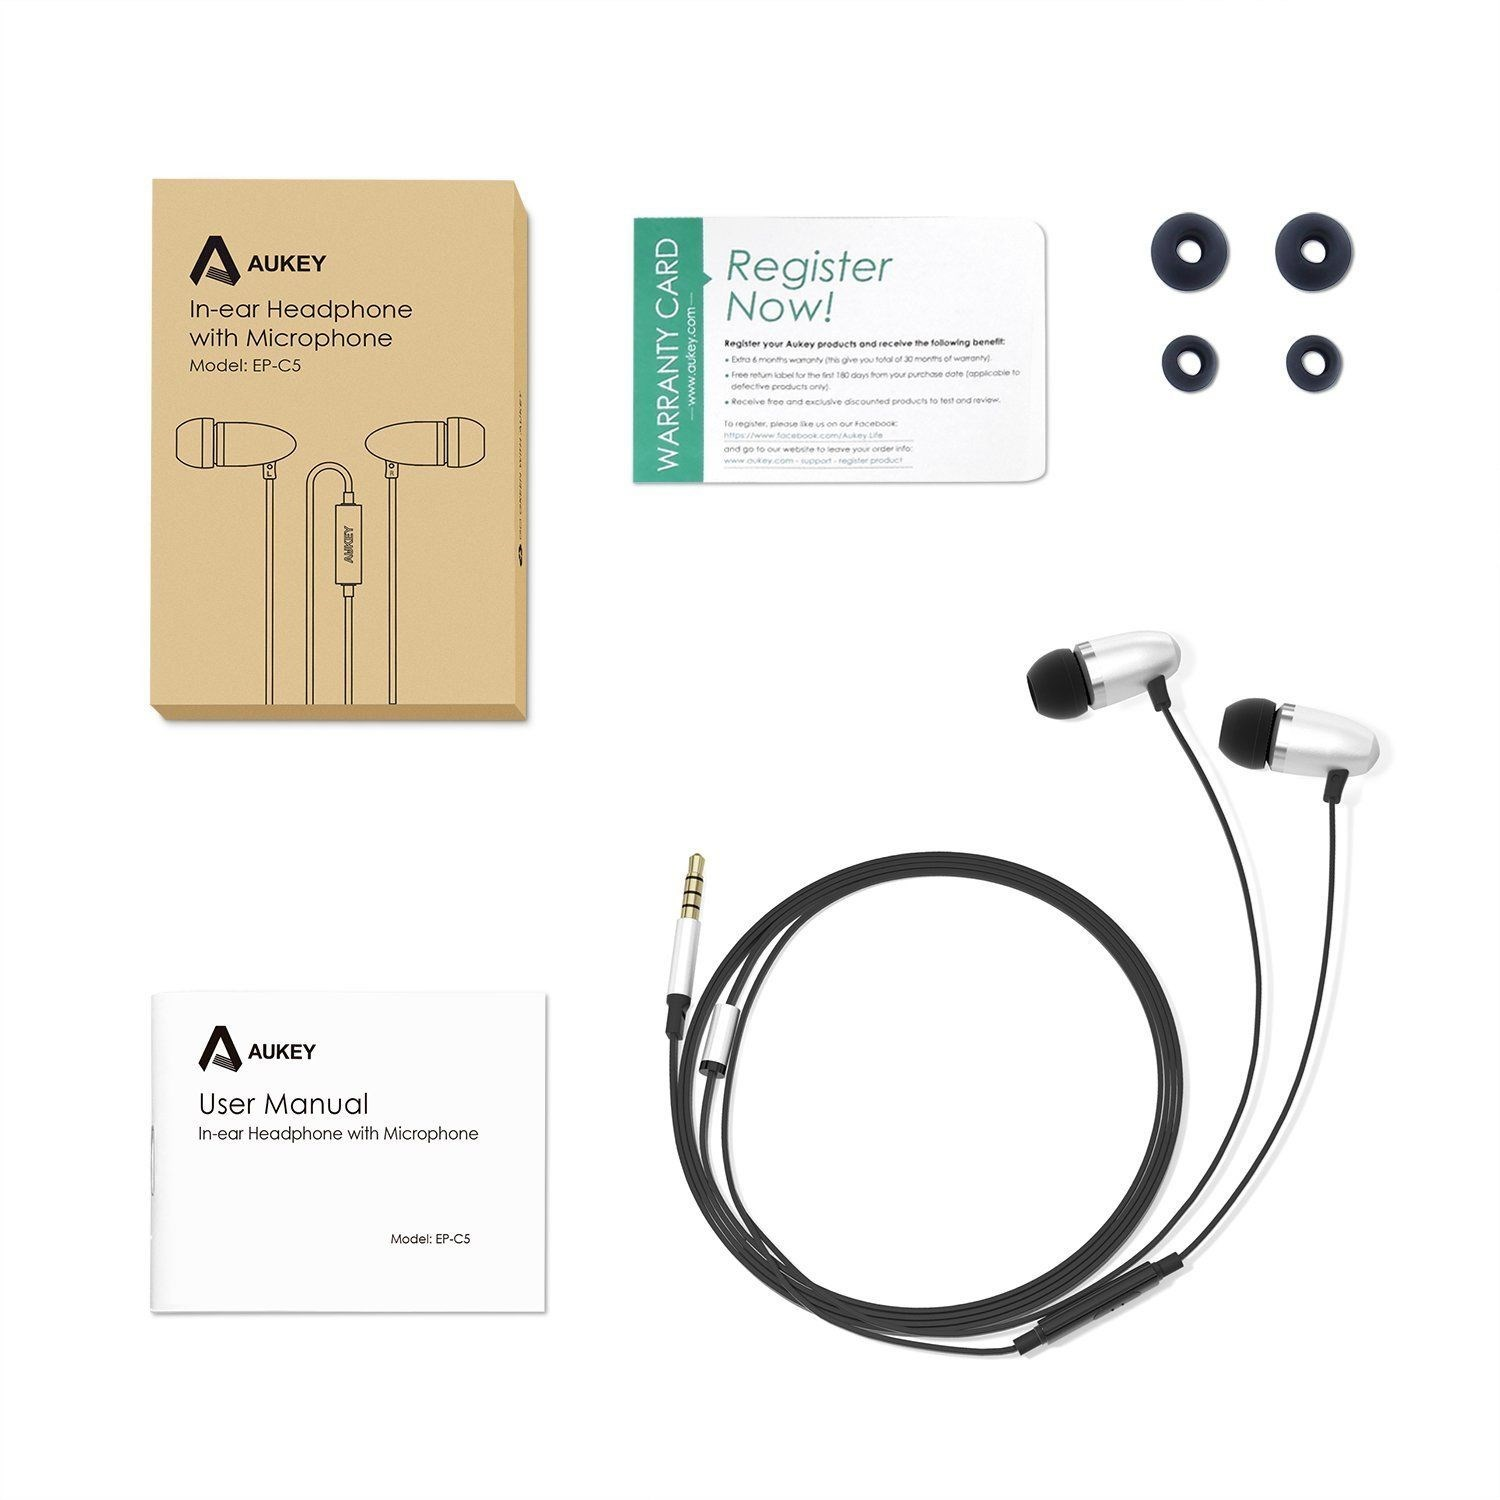 Tai nghe in-ear Aukey EP-C5, có mic cho IPhone, Samsung, Android Smartphones